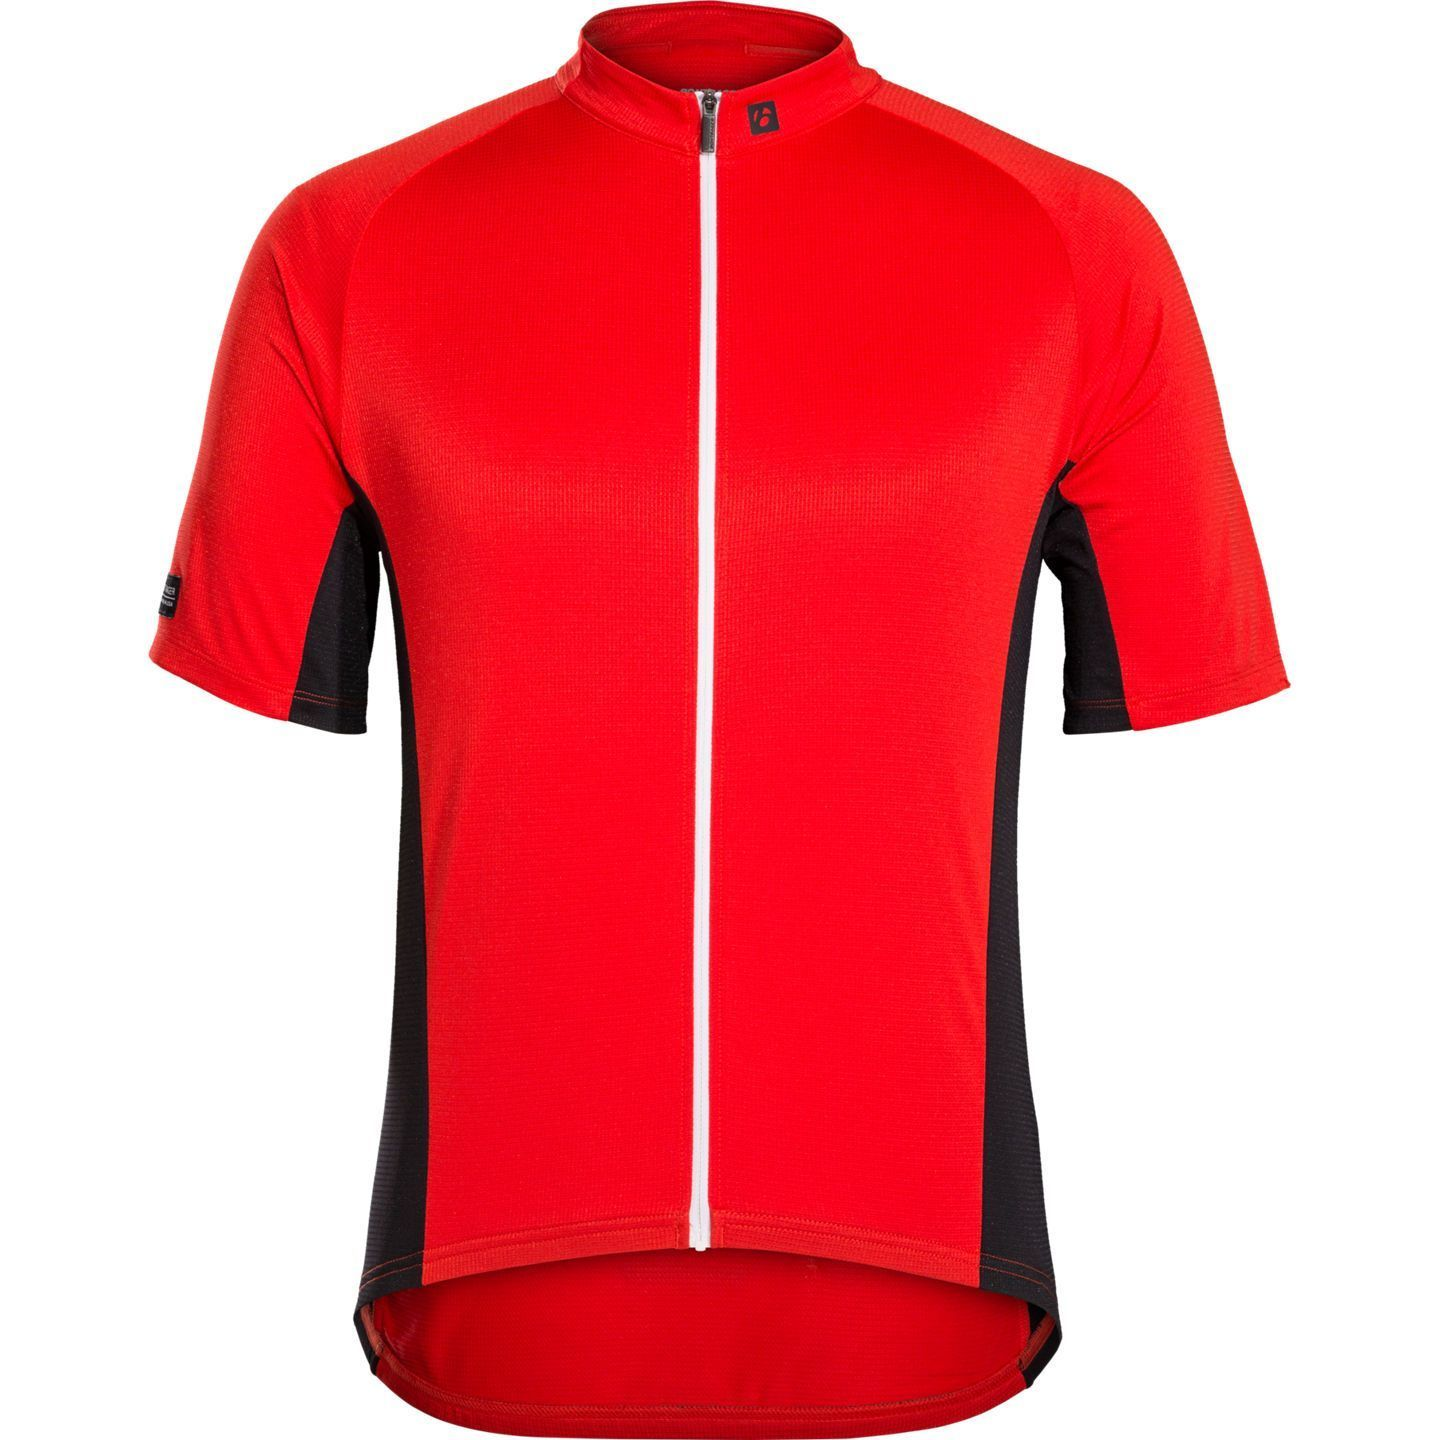 7fd550f8e Bontrager SOLSTICE short sleeve cycling jersey red. Previous